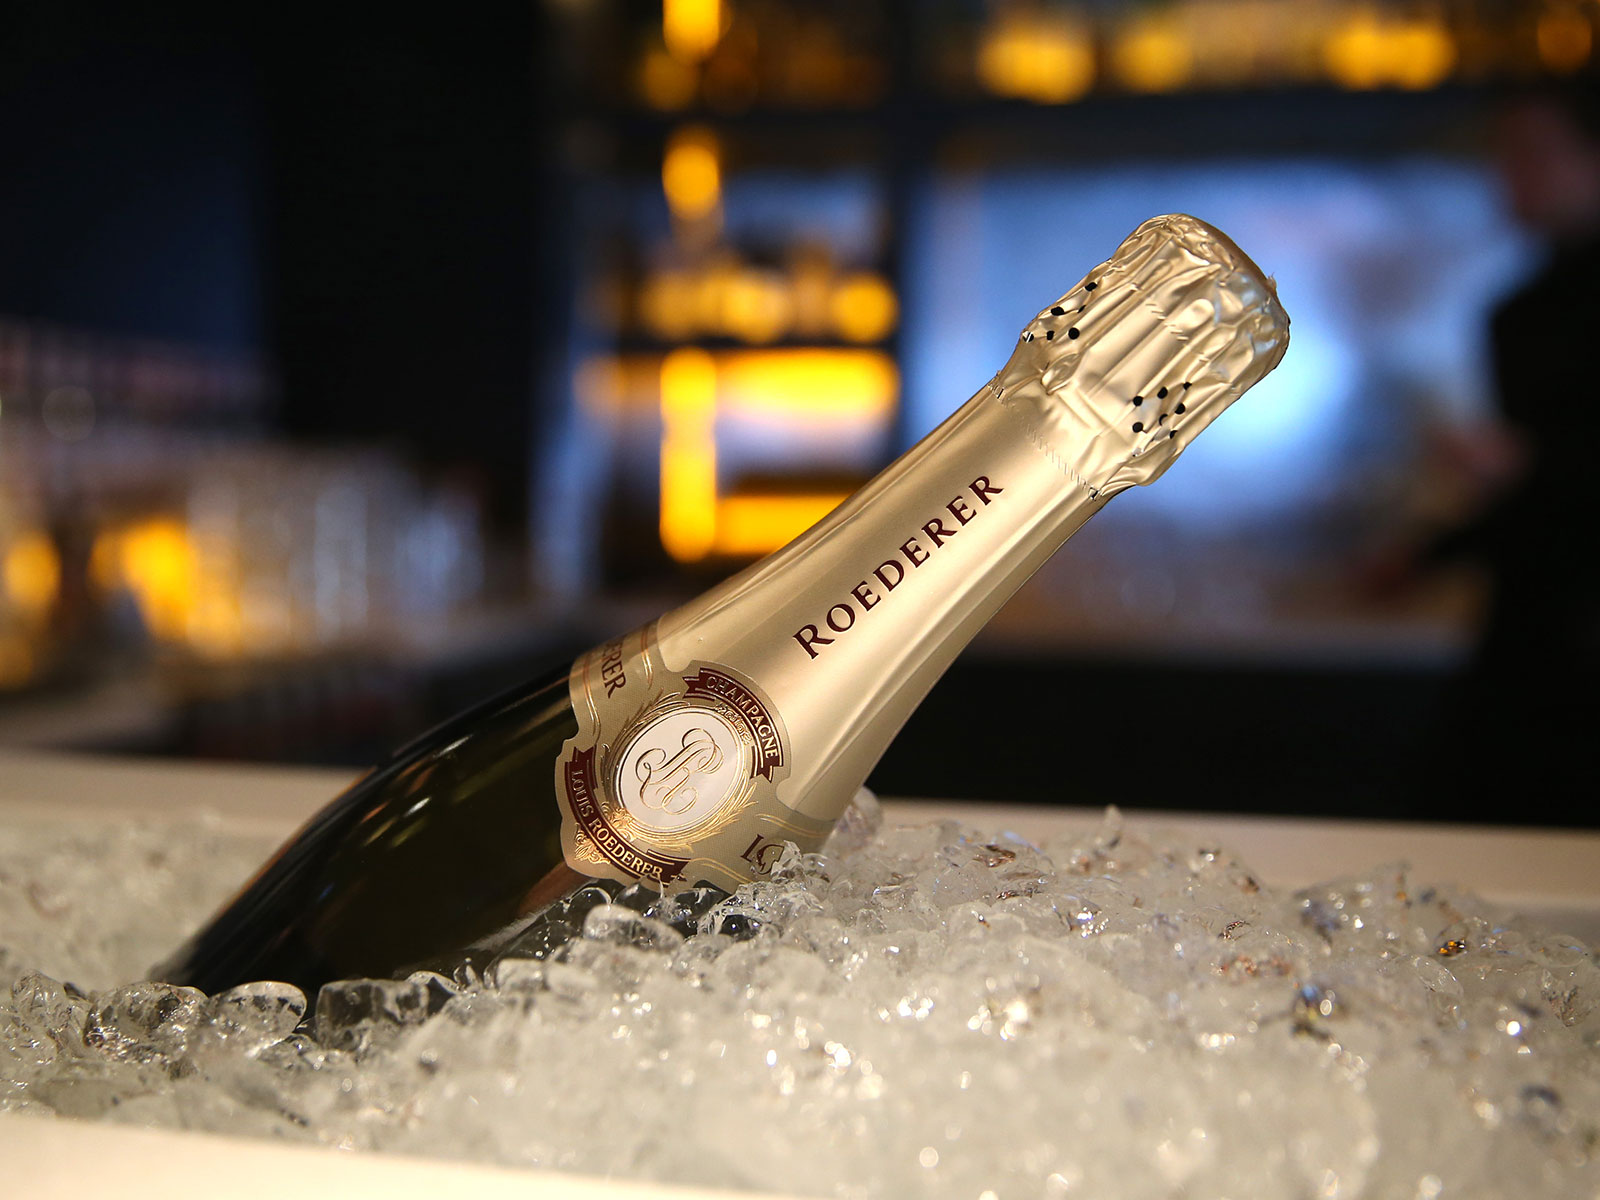 Meet Vinotheque, Aged Cristal for Champagne Lovers Looking to Splurge This Holiday Season